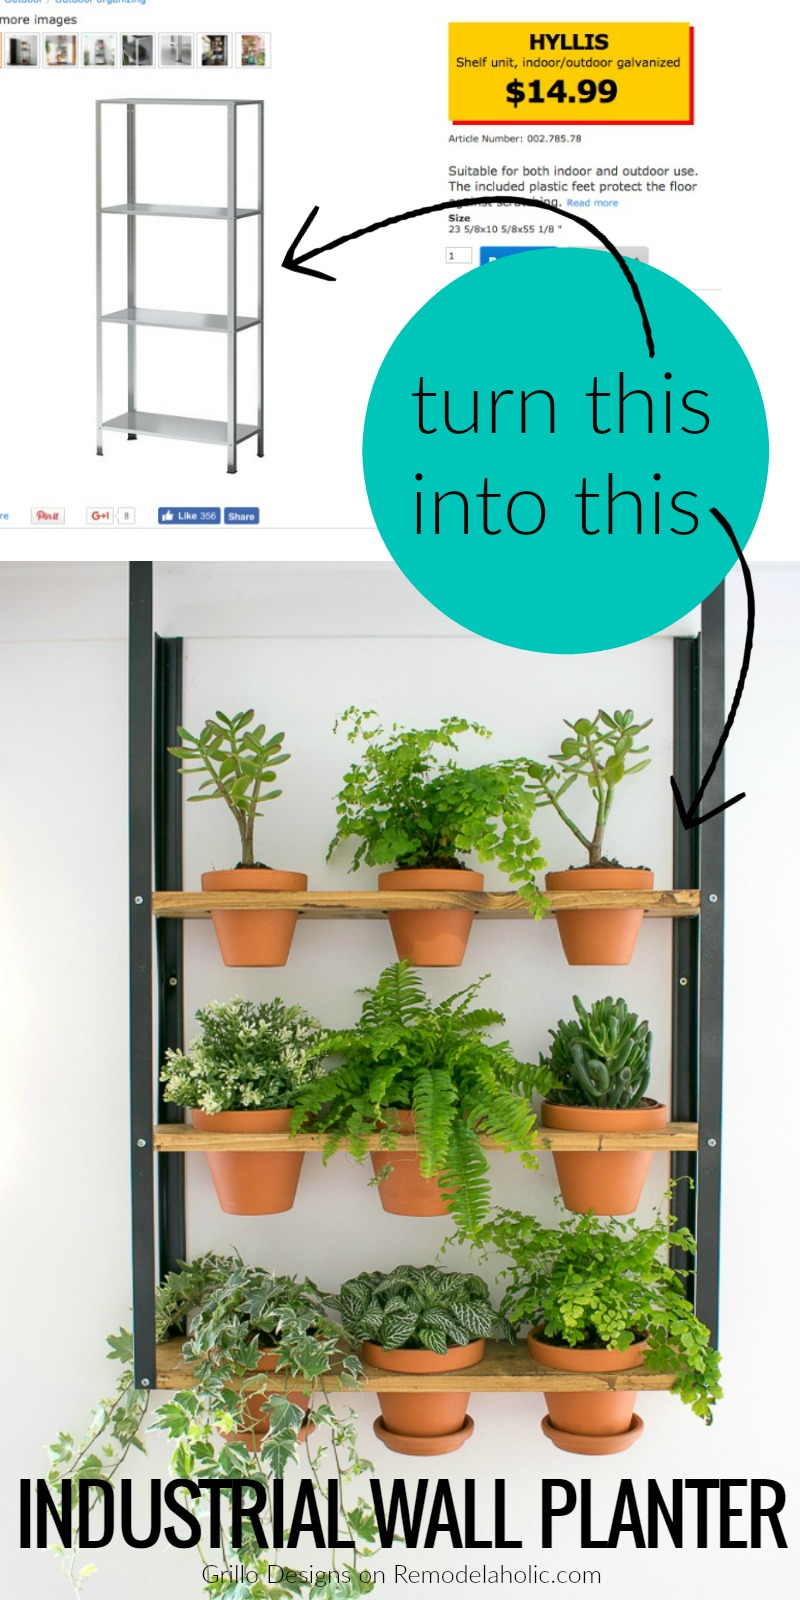 Cool Remodelaholic Ikea Hyllis Hack Industrial Wall Planter Download Free Architecture Designs Scobabritishbridgeorg